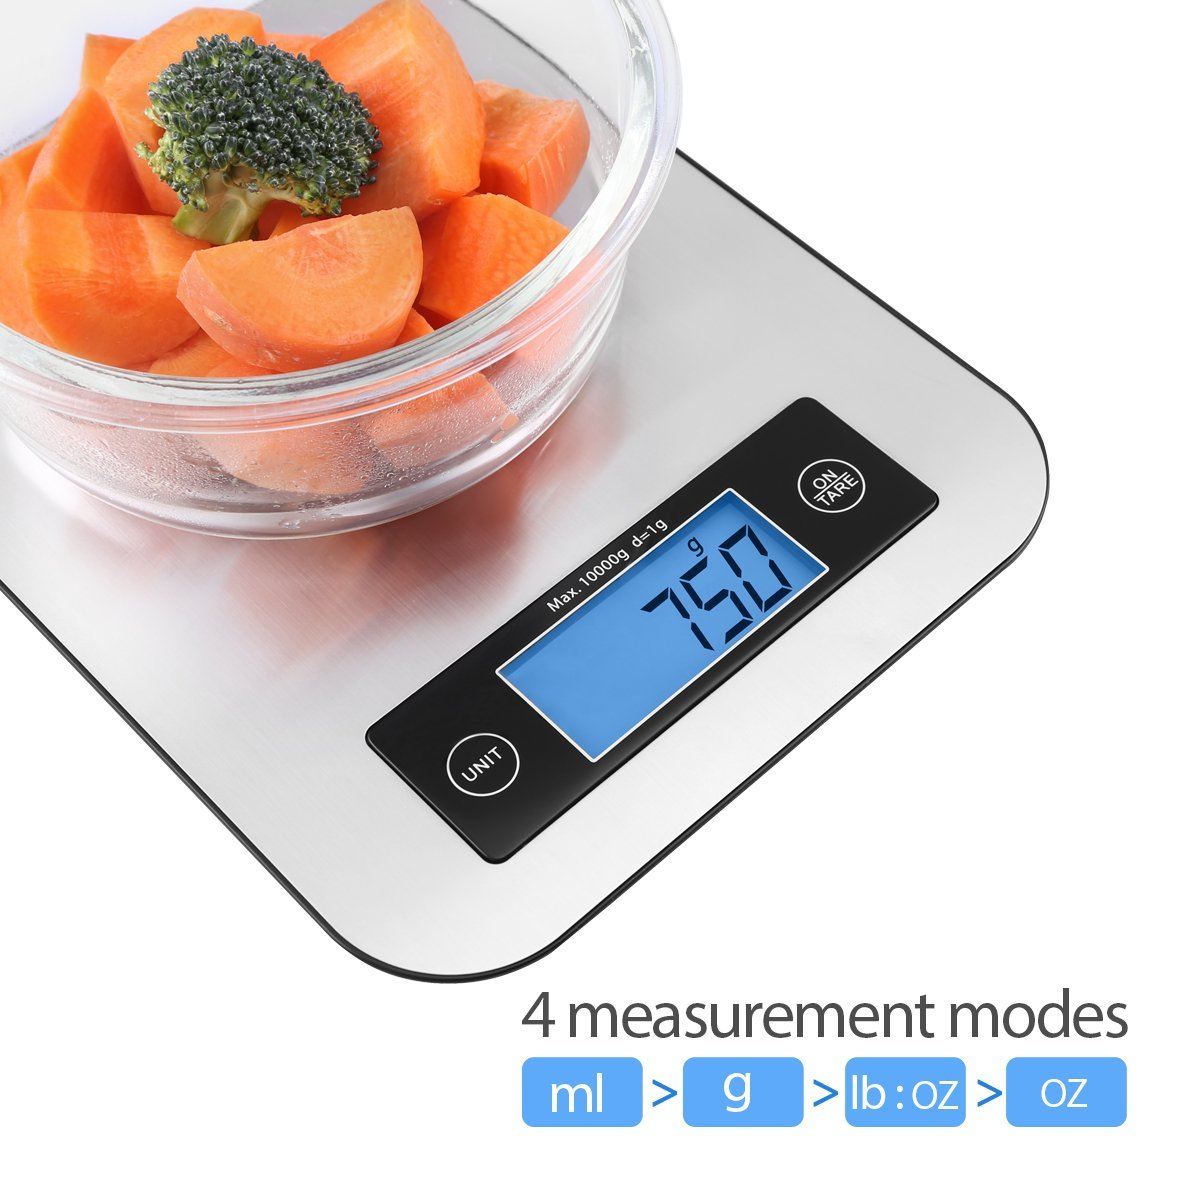 Digital Kitchen Food Scale, TOBOX Small Cooking Scale with Stainless Steel Panel and Blue LED Display Screen, Fast Unit Switching Kitchen Weighing Scale, Easy to Clean Holds Up to 11 Ibs/5 Kg